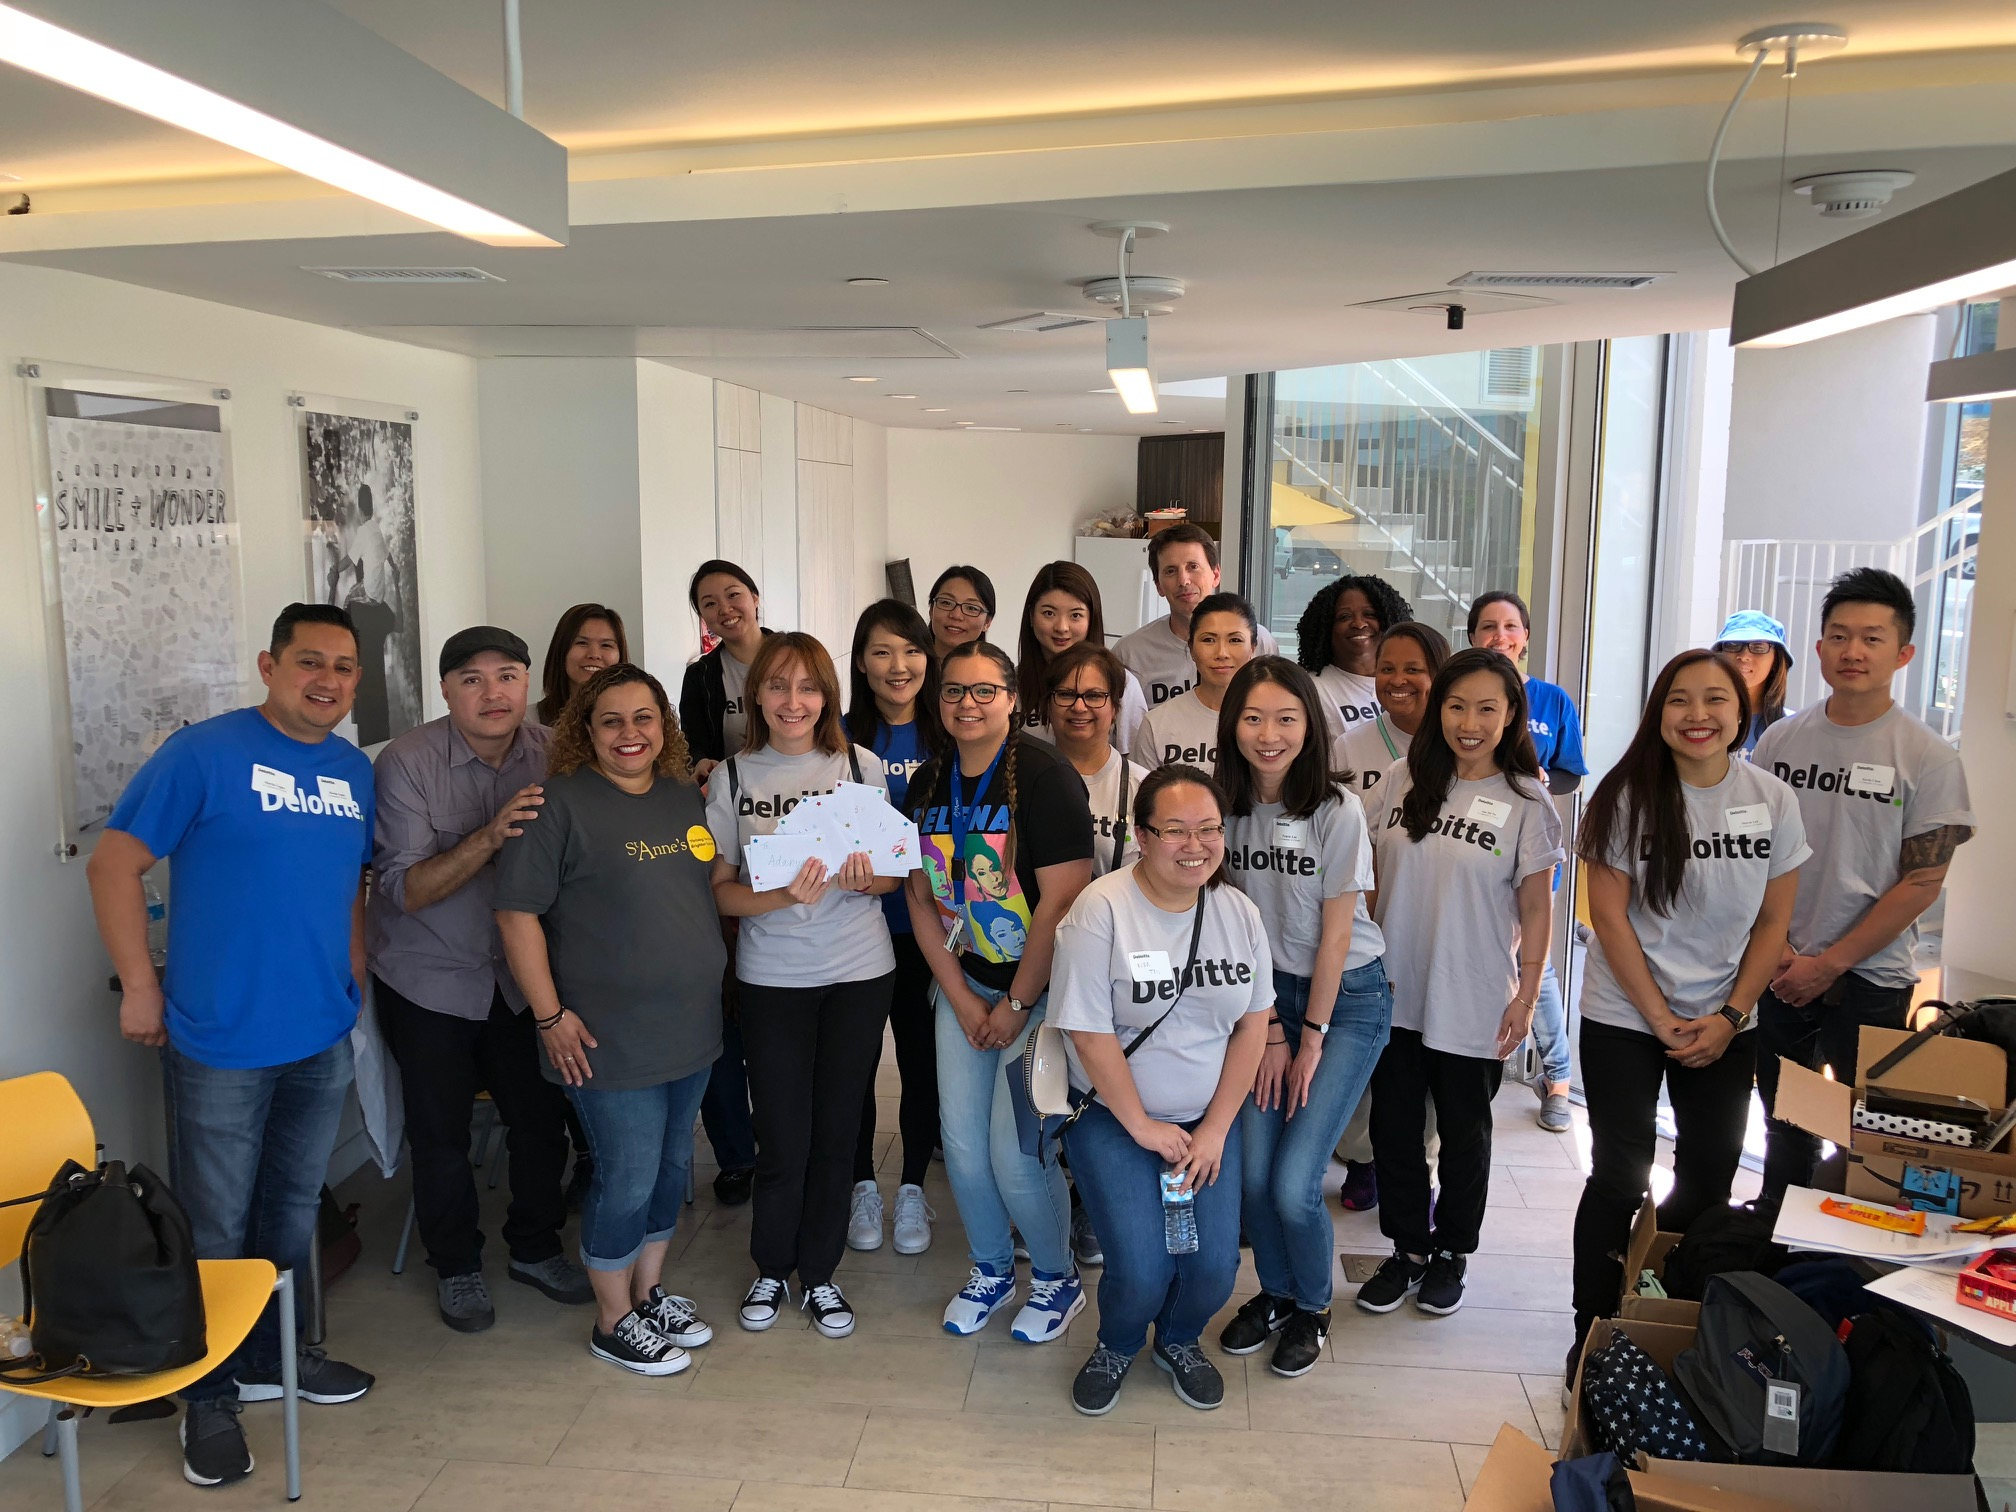 Deloitte's 19th Annual Impact Day with ACOF